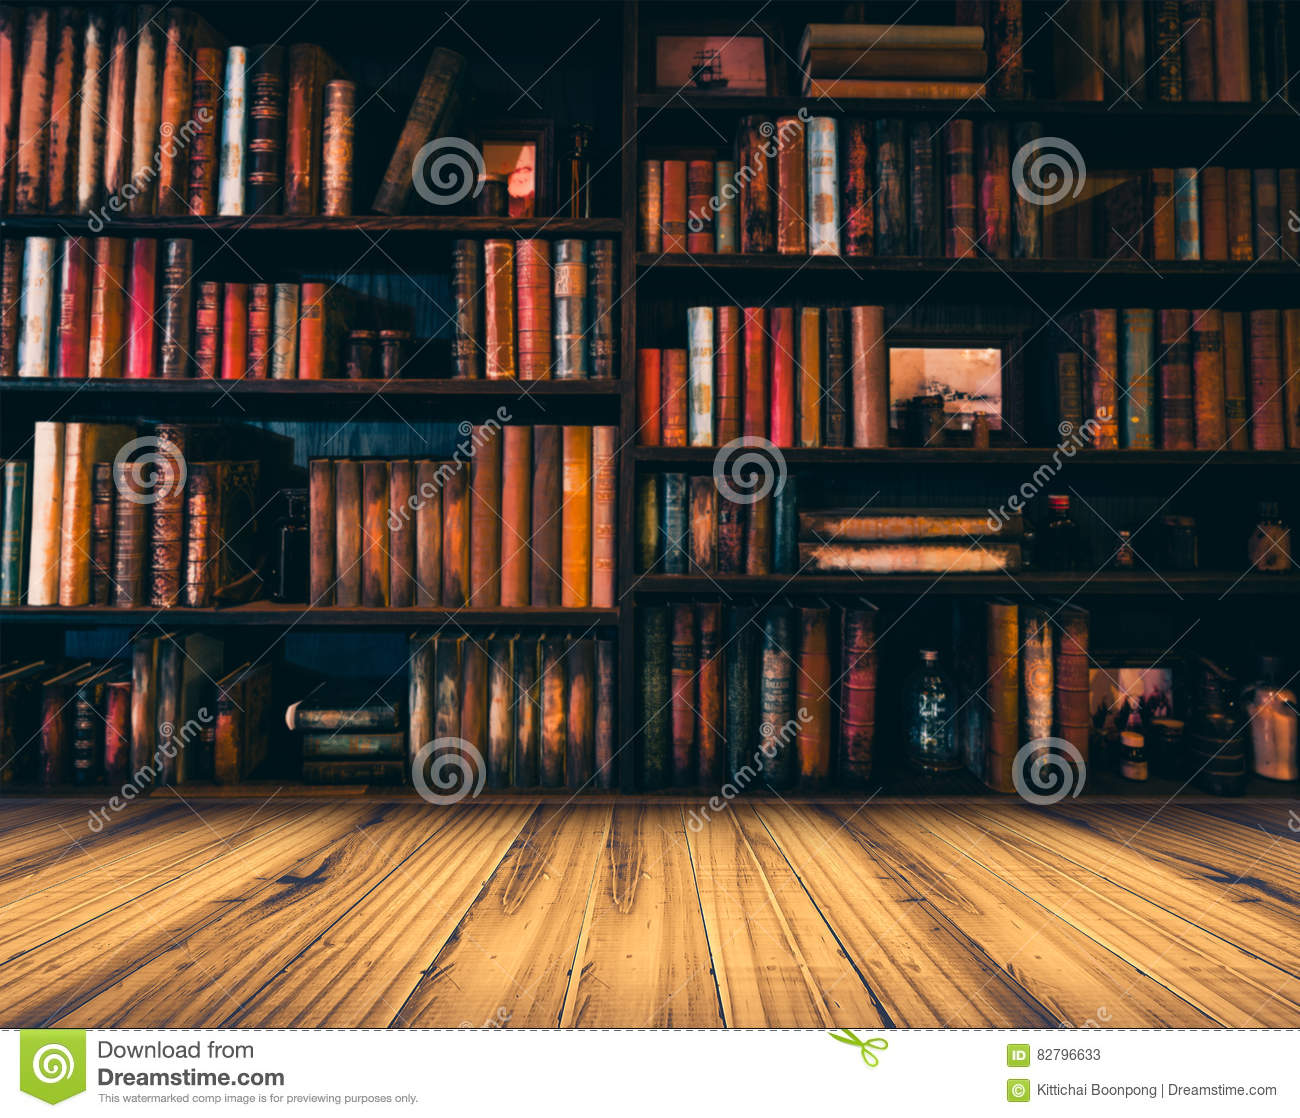 Blurred Image Many Old Books On Bookshelf In Library Download Preview